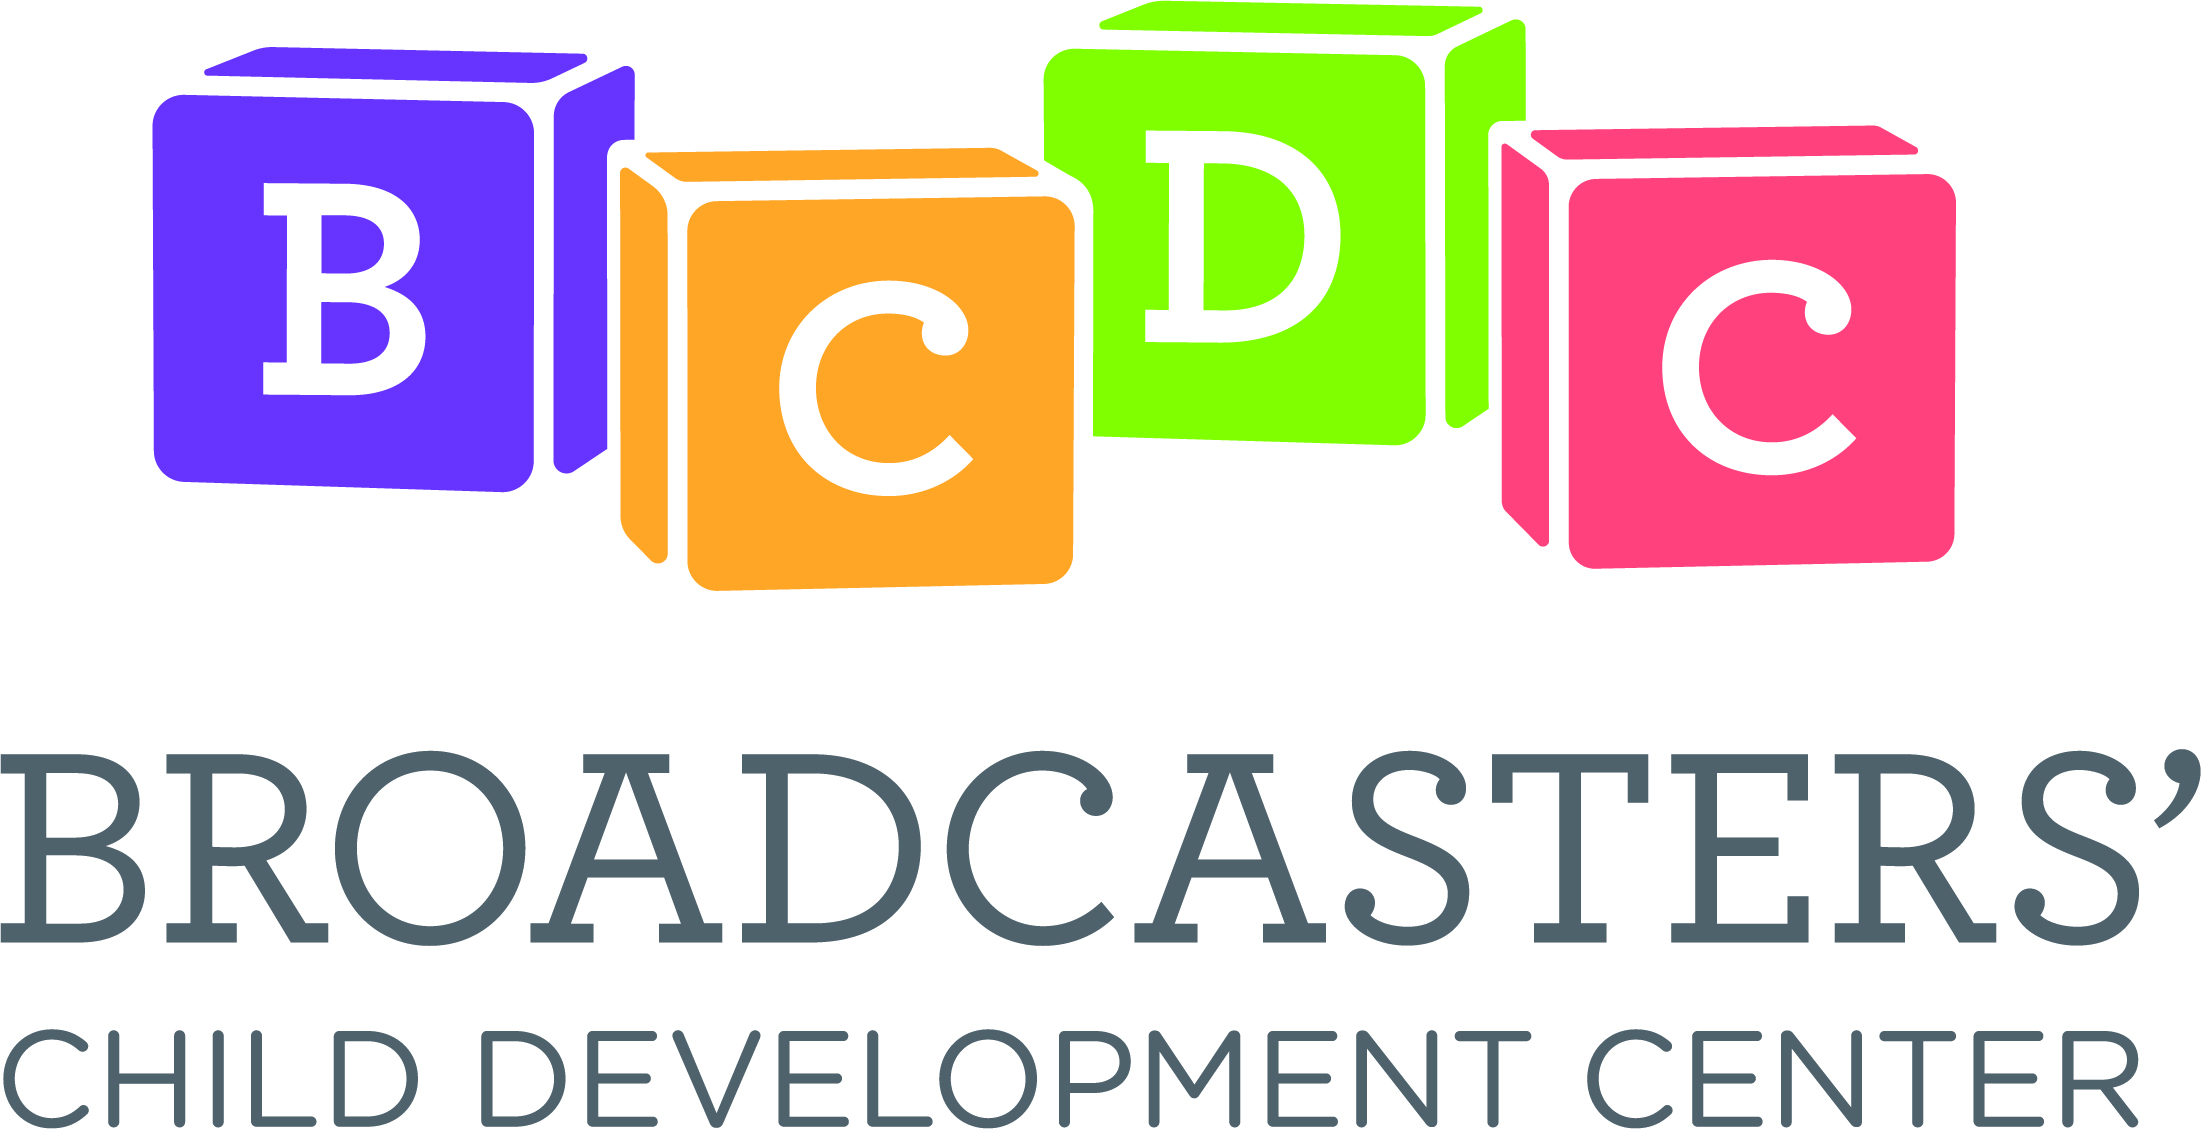 Broadcasters Child Development Center (BCDC)